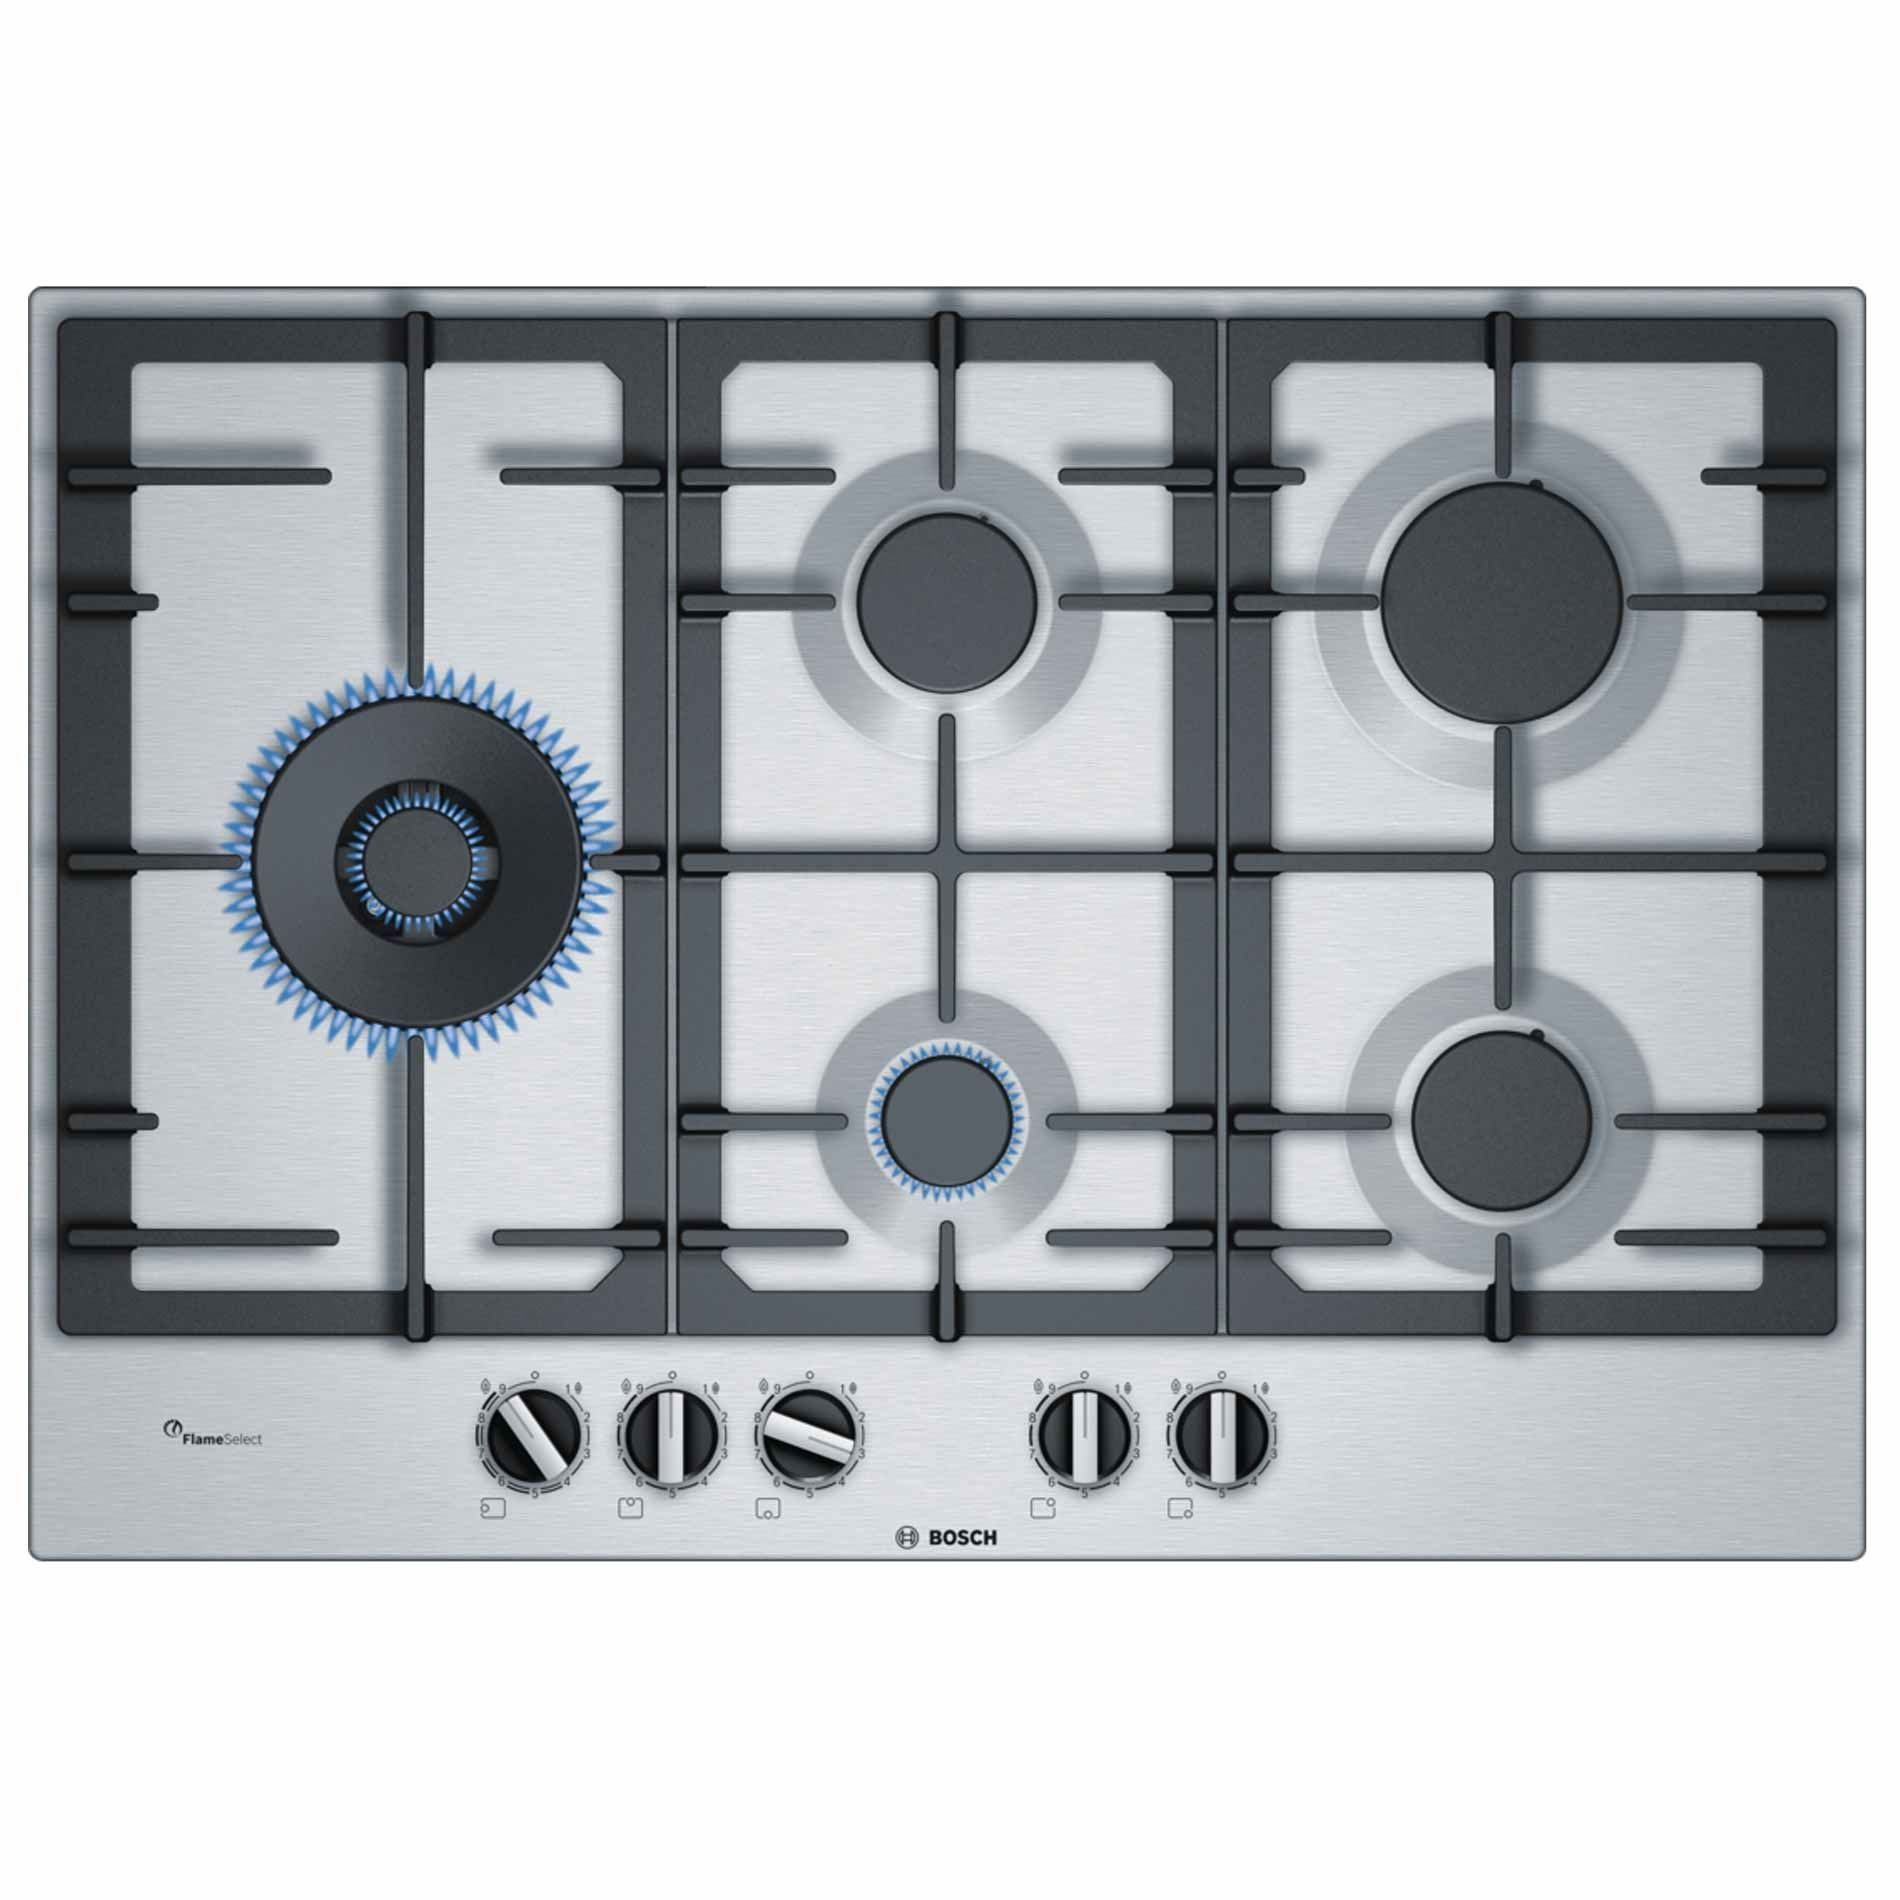 bosch pcs7a5b90 series 6 75cm gas hob stainless steel appliance source. Black Bedroom Furniture Sets. Home Design Ideas